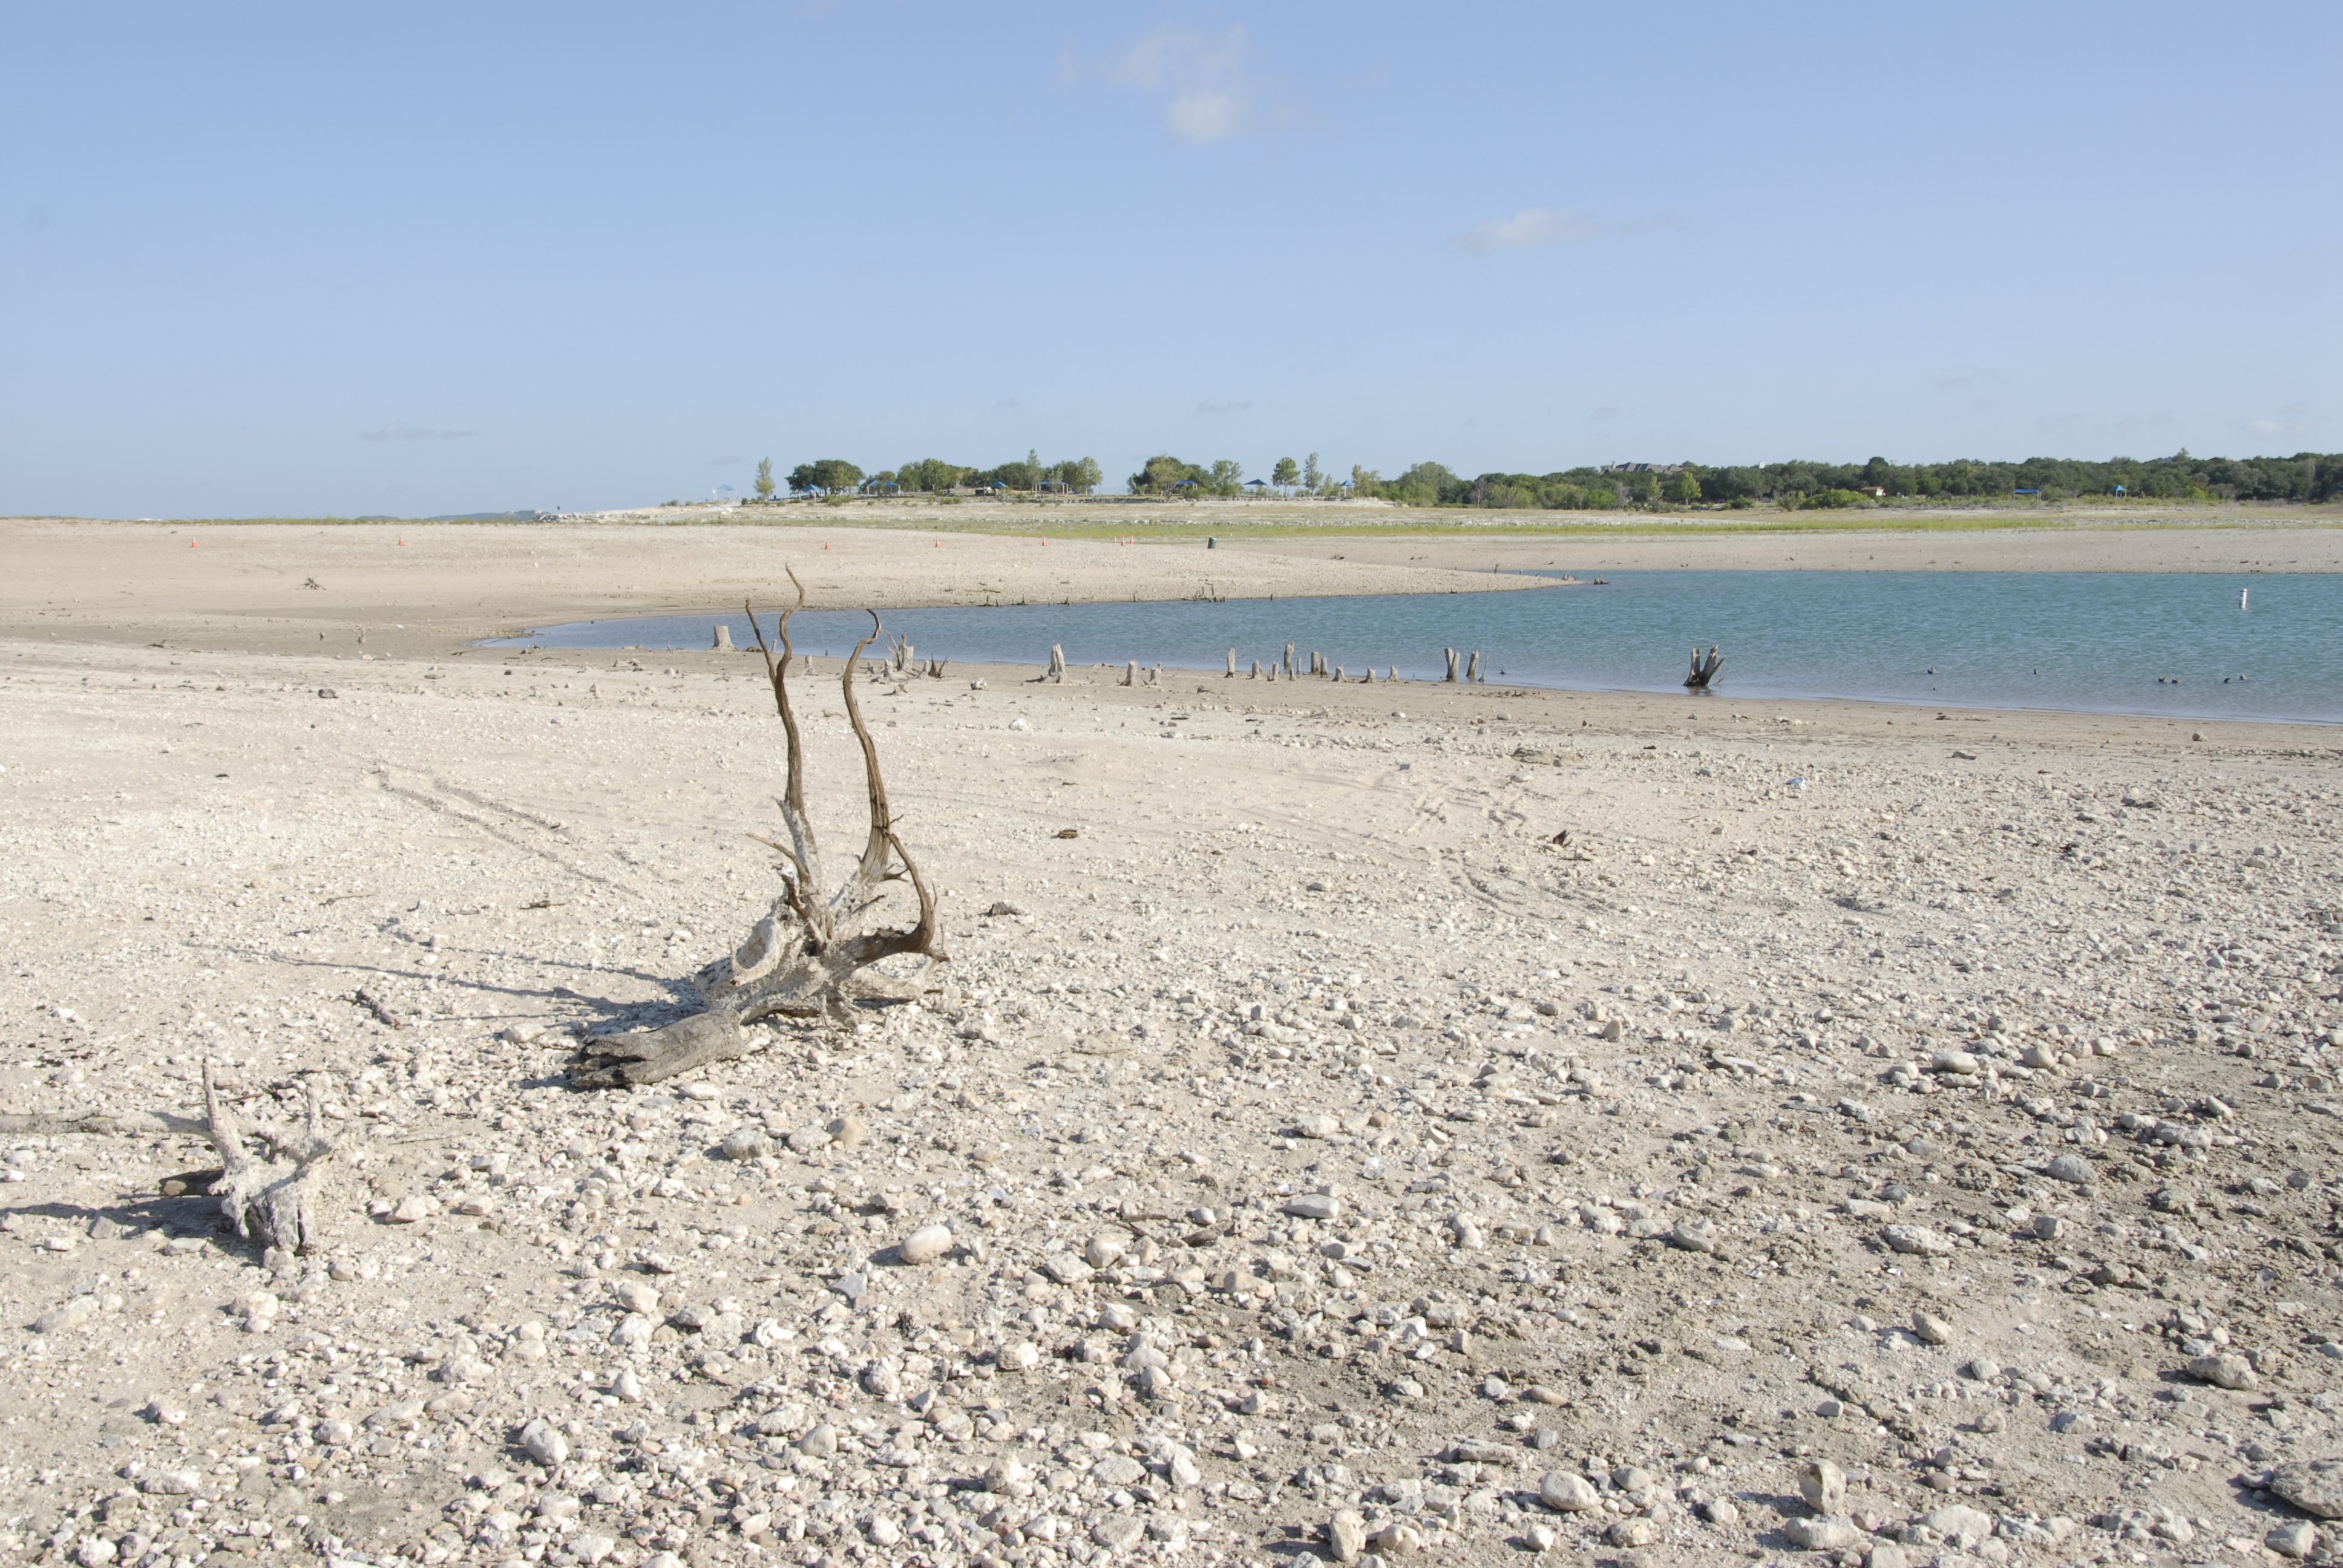 texas water drought A future without water is no future at all that's why texas living waters project exists – to ensure that our springs, creeks and rivers will flow forever.